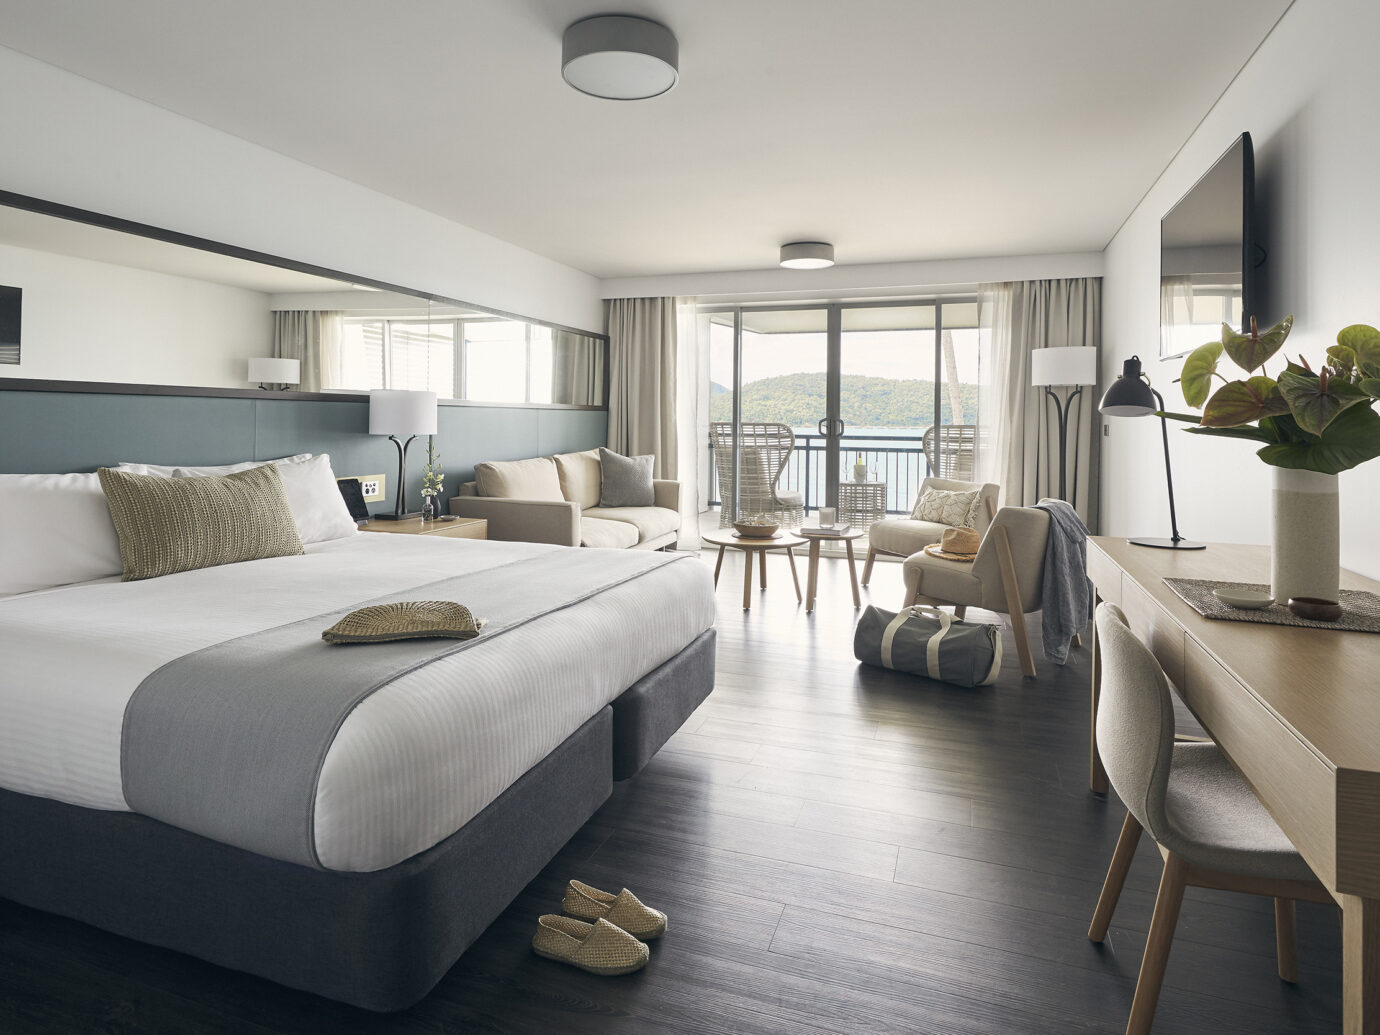 Deluxe Ocean Terrace at Daydream Island